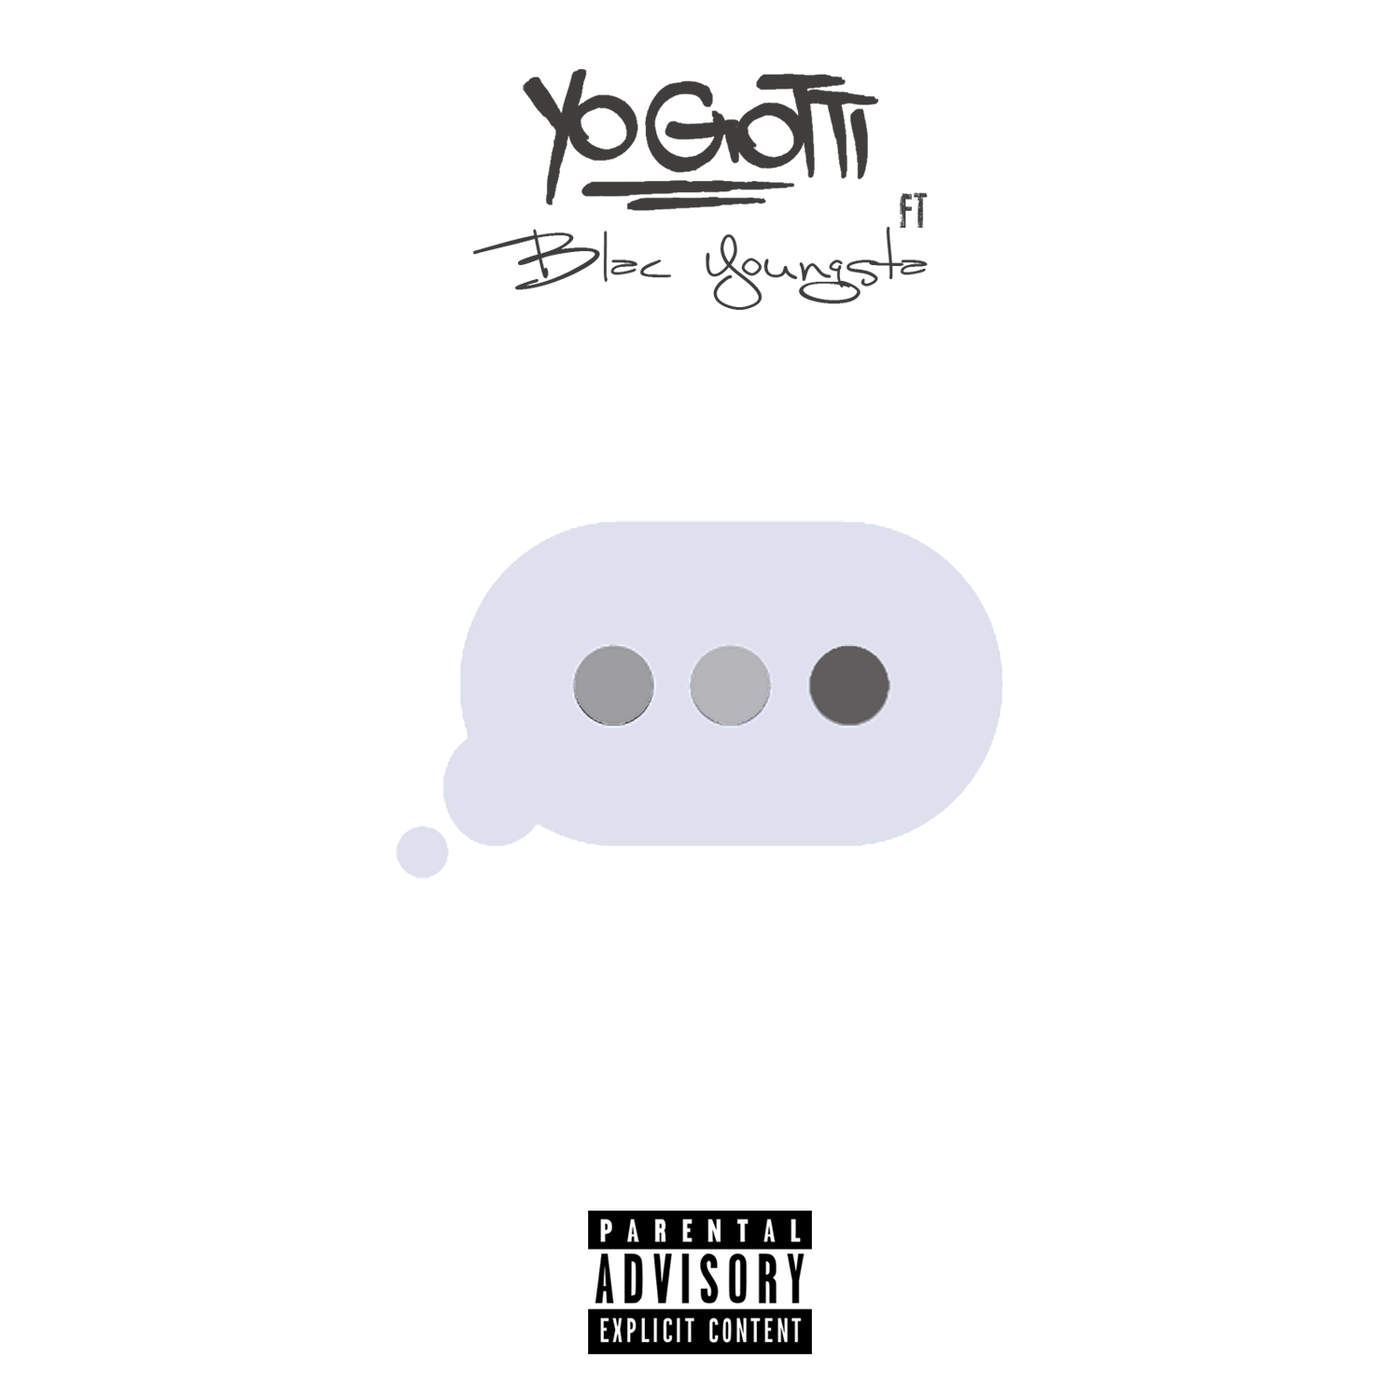 Yo Gotti - Wait for It (feat. Blac Youngsta) - Single Cover